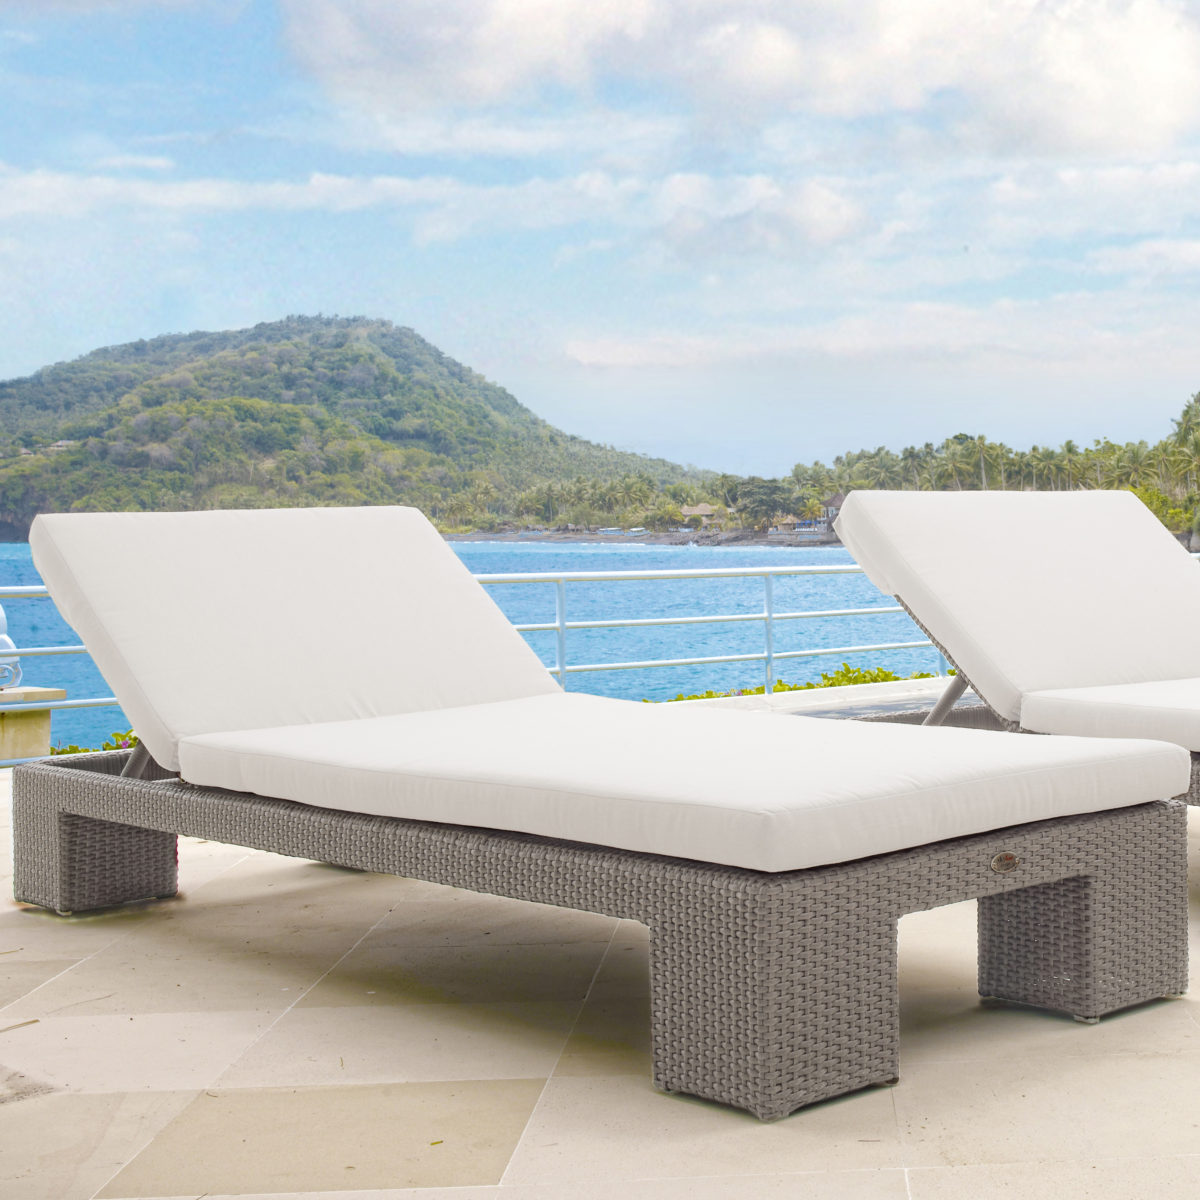 Pacific Chaise Lounger